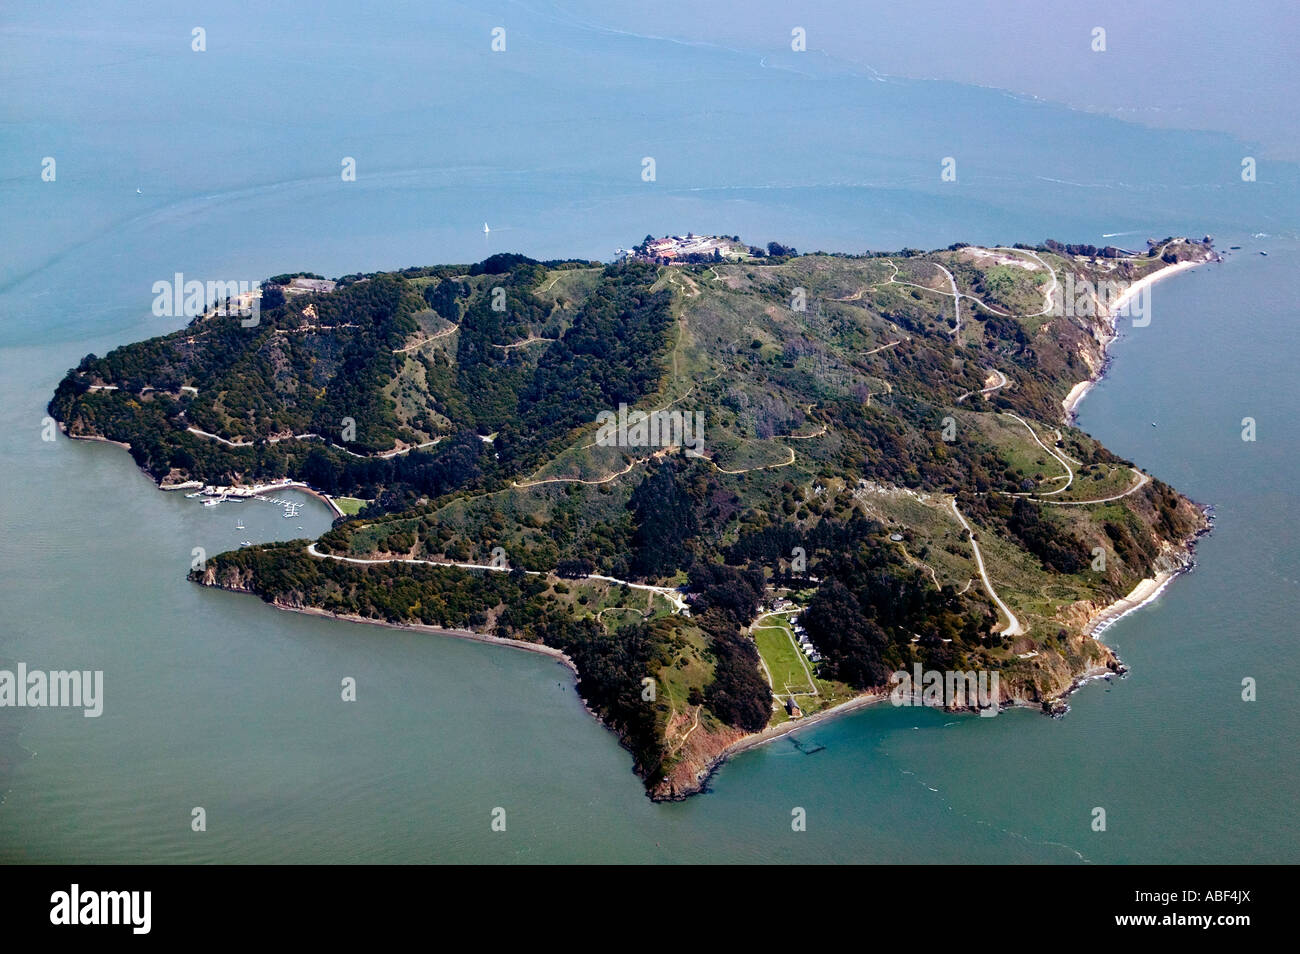 the history and importance of angel island in california Angel island, located in california's san francisco bay, has been used for many   angel island is an important historical site because of the discrimination.